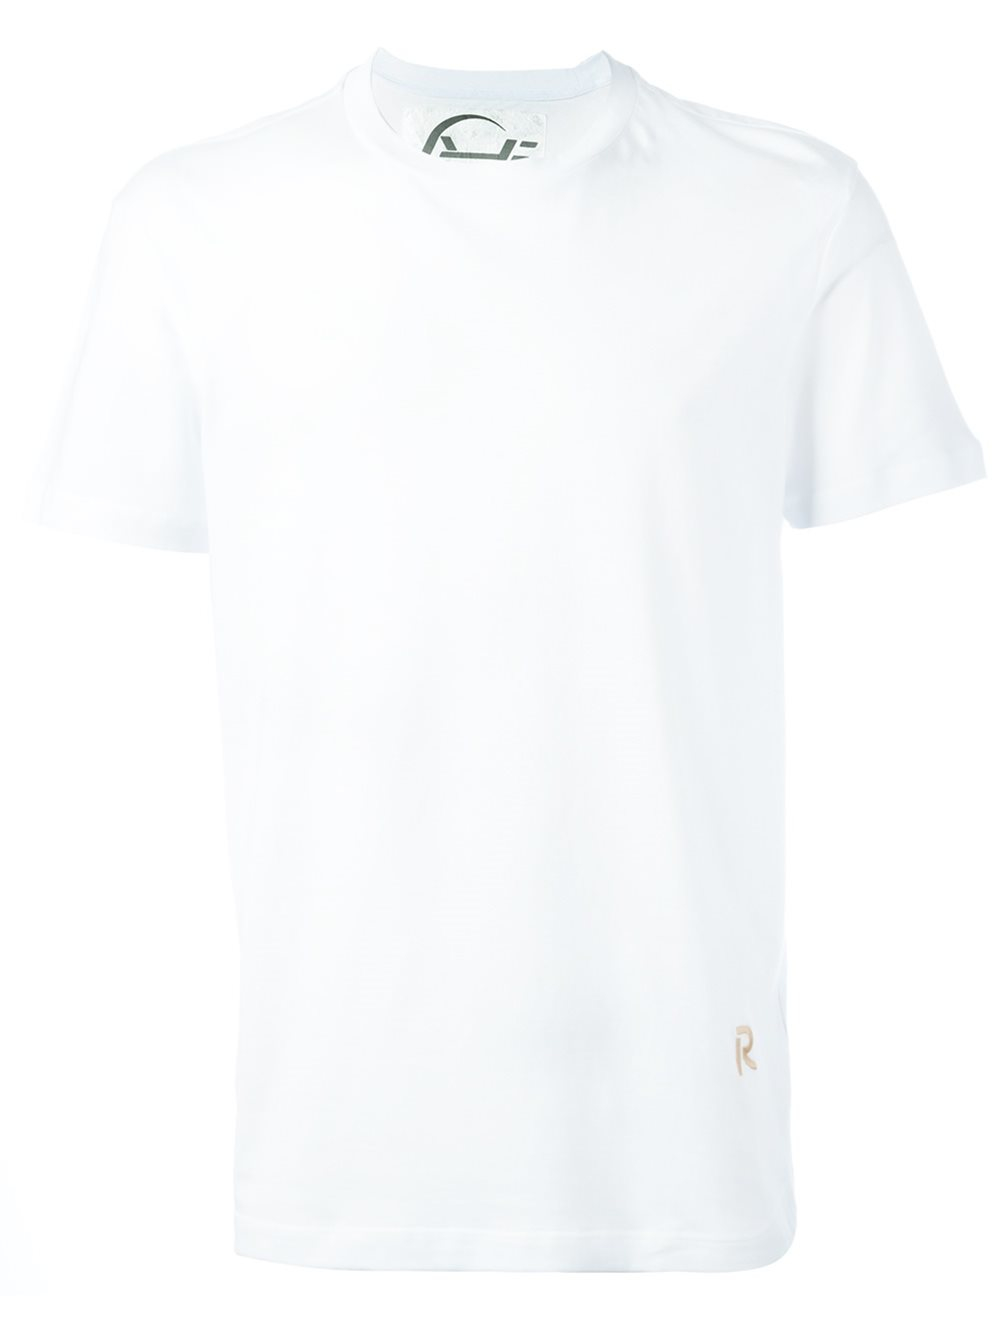 Raf simons embroidered logo t shirt in black for men for Embroidered logos on shirts